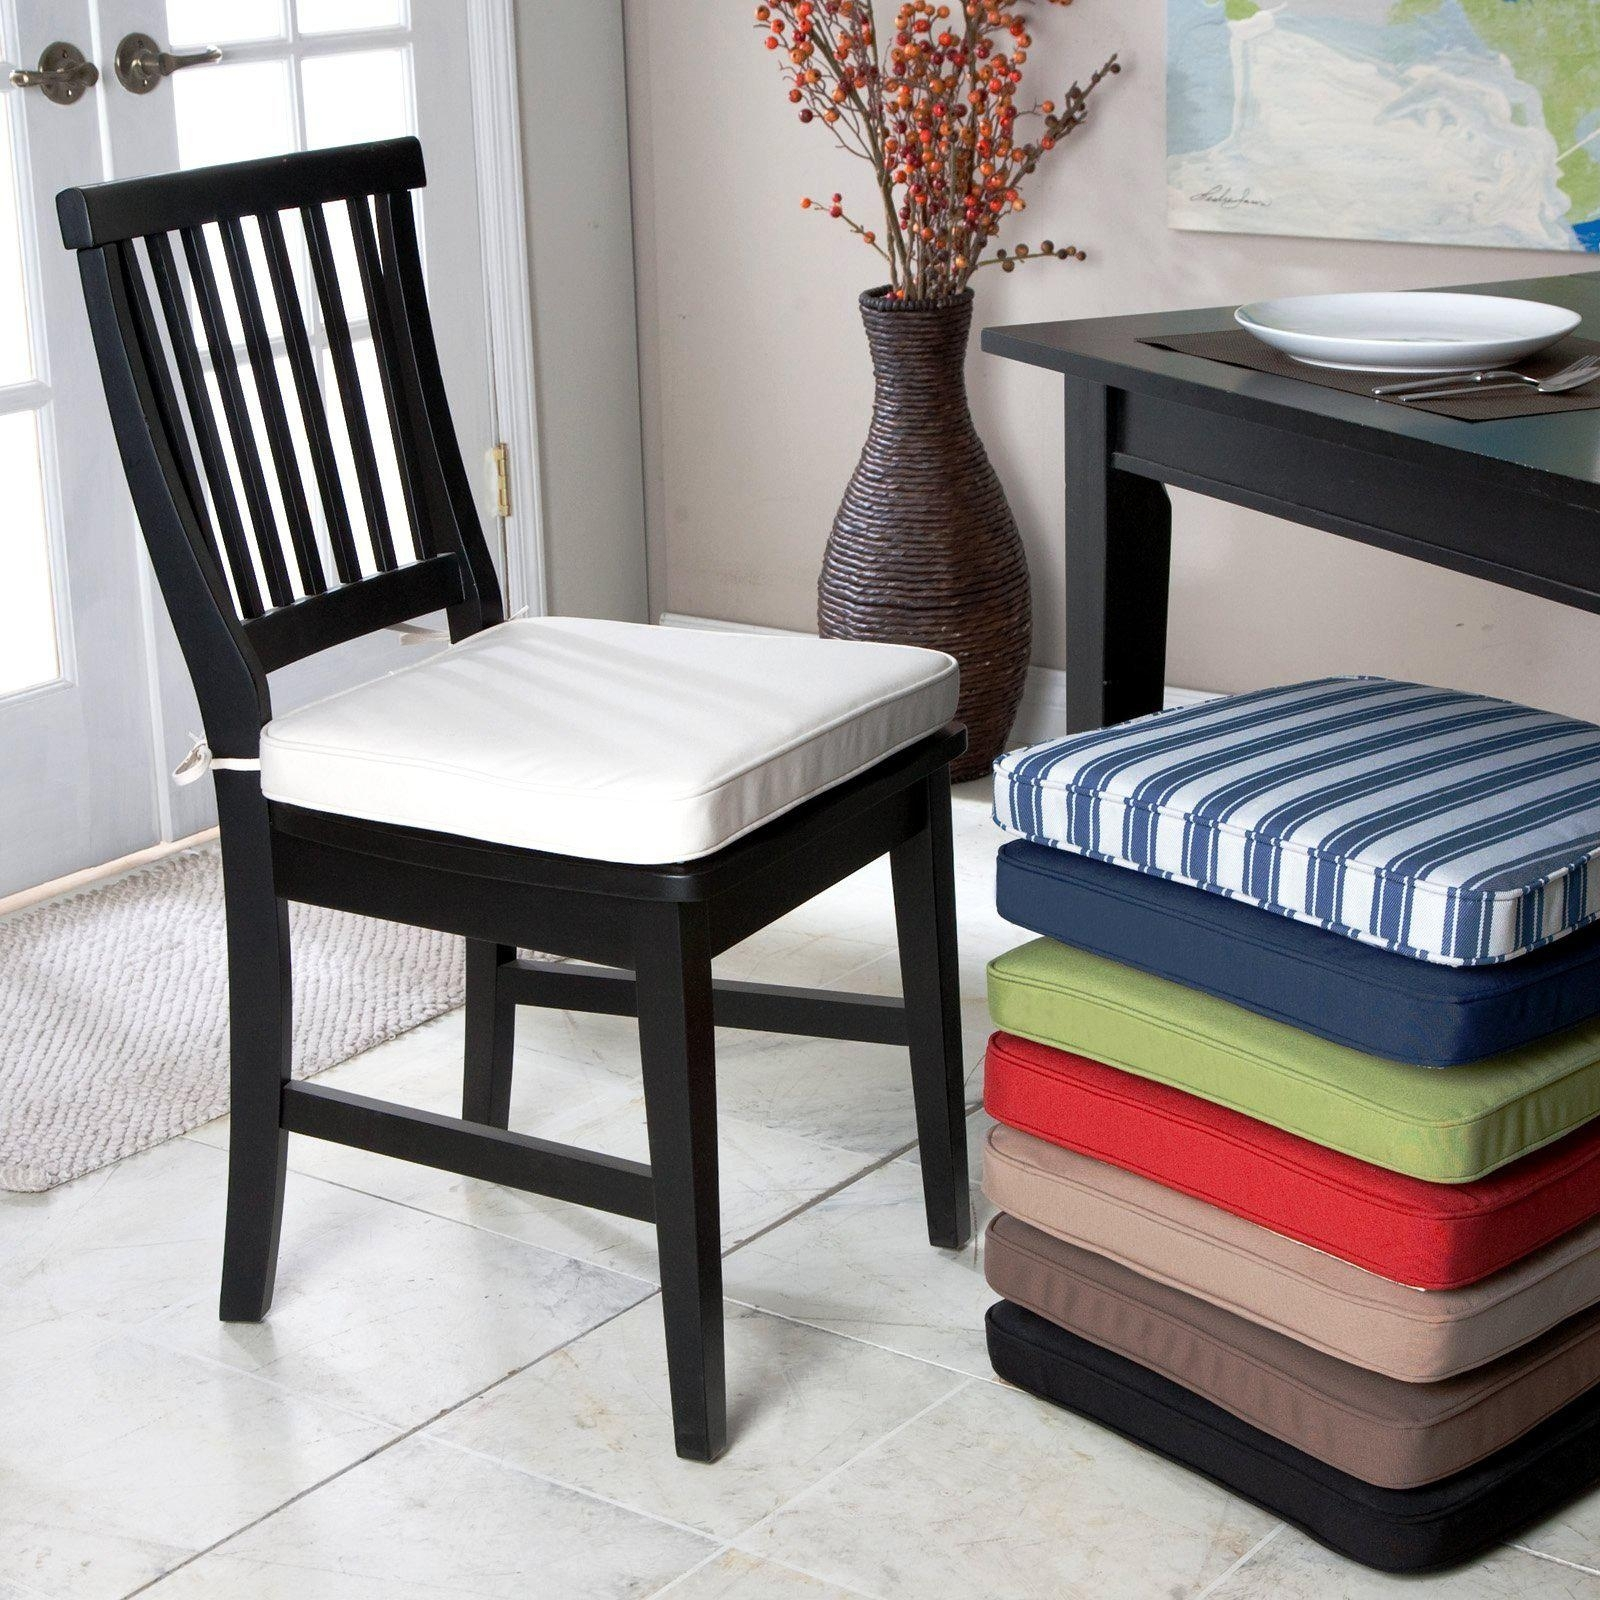 Wayfair Outdoor Rocking Chair Cushions Kitchen Pads Chairs Ideas 60 Pertaining To Rocking Chairs At Wayfair (#10 of 15)